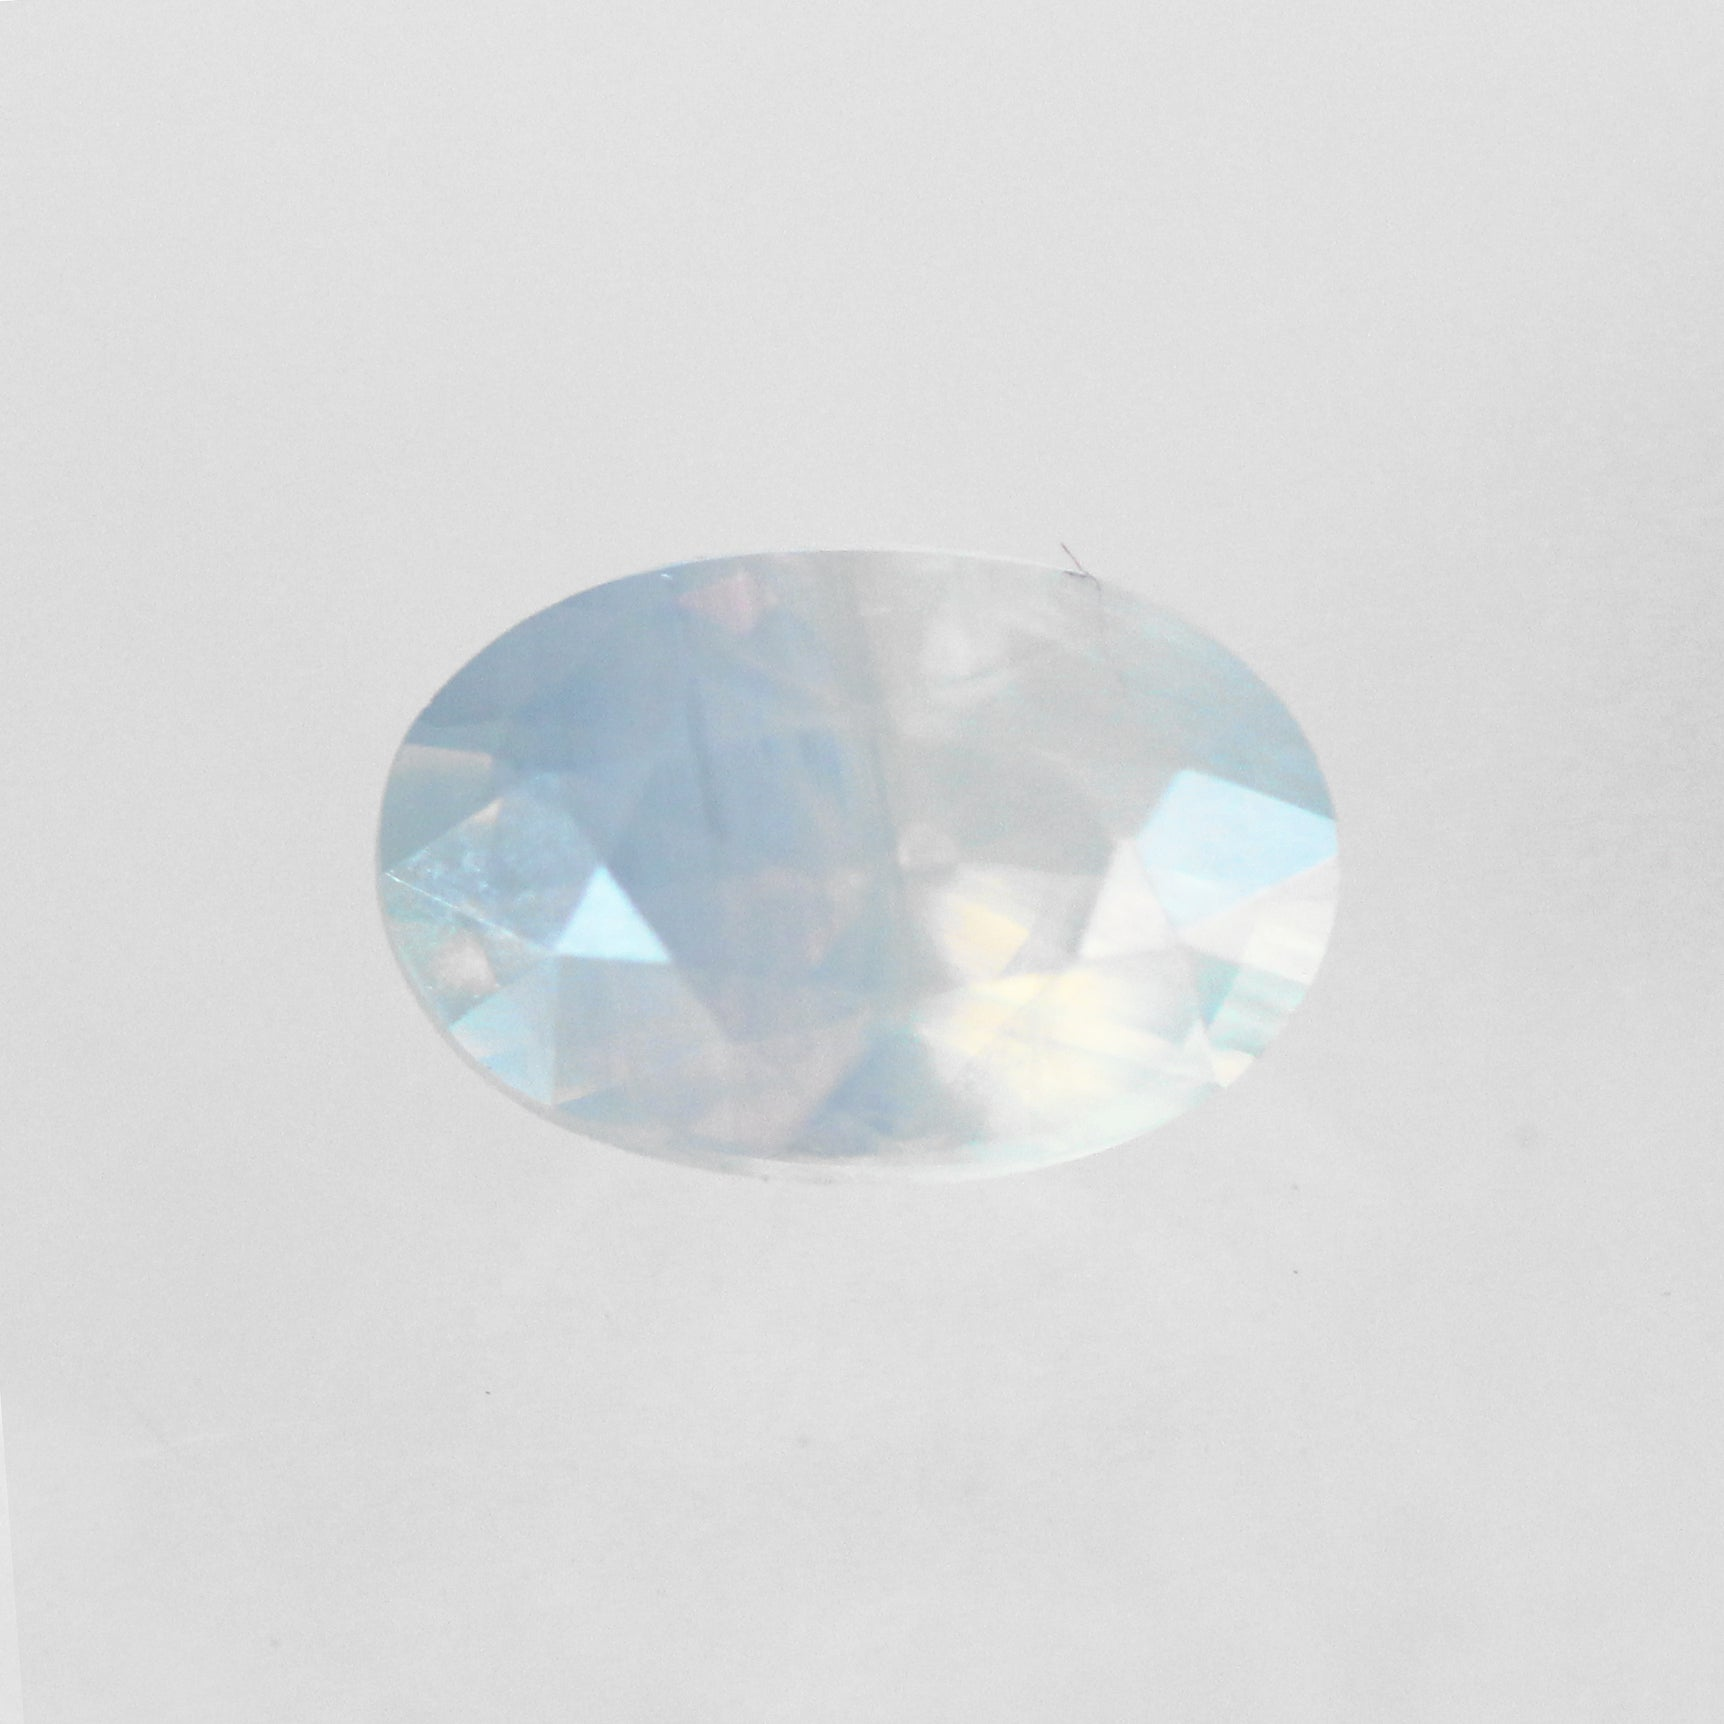 1.44 Carat Oval Opalescent Sapphire - Inventory Code OBS144 - Celestial Diamonds ® by Midwinter Co.